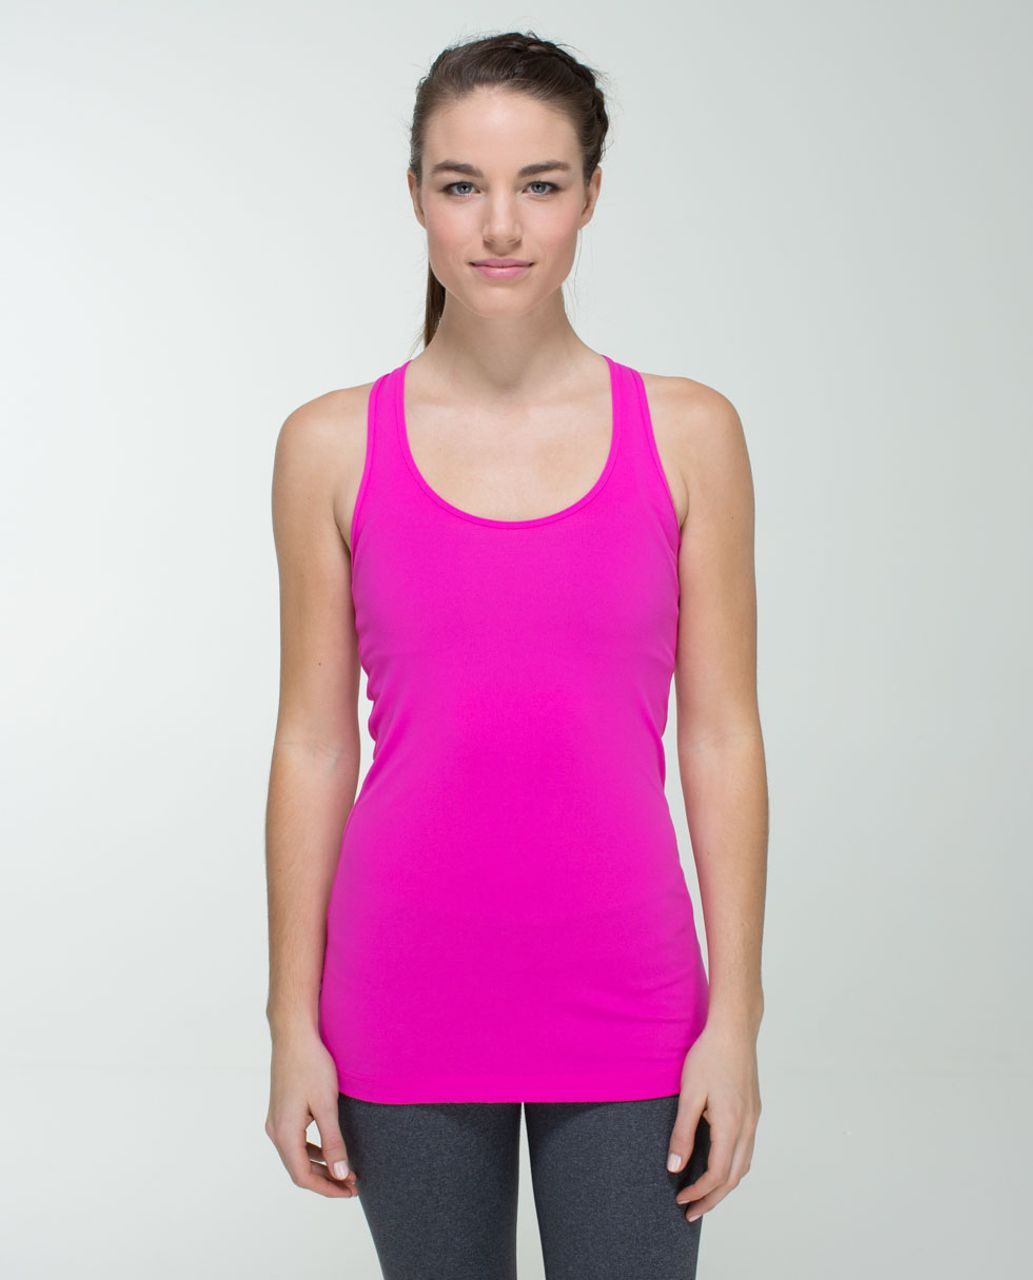 Lululemon Cool Racerback - Paris Perfection